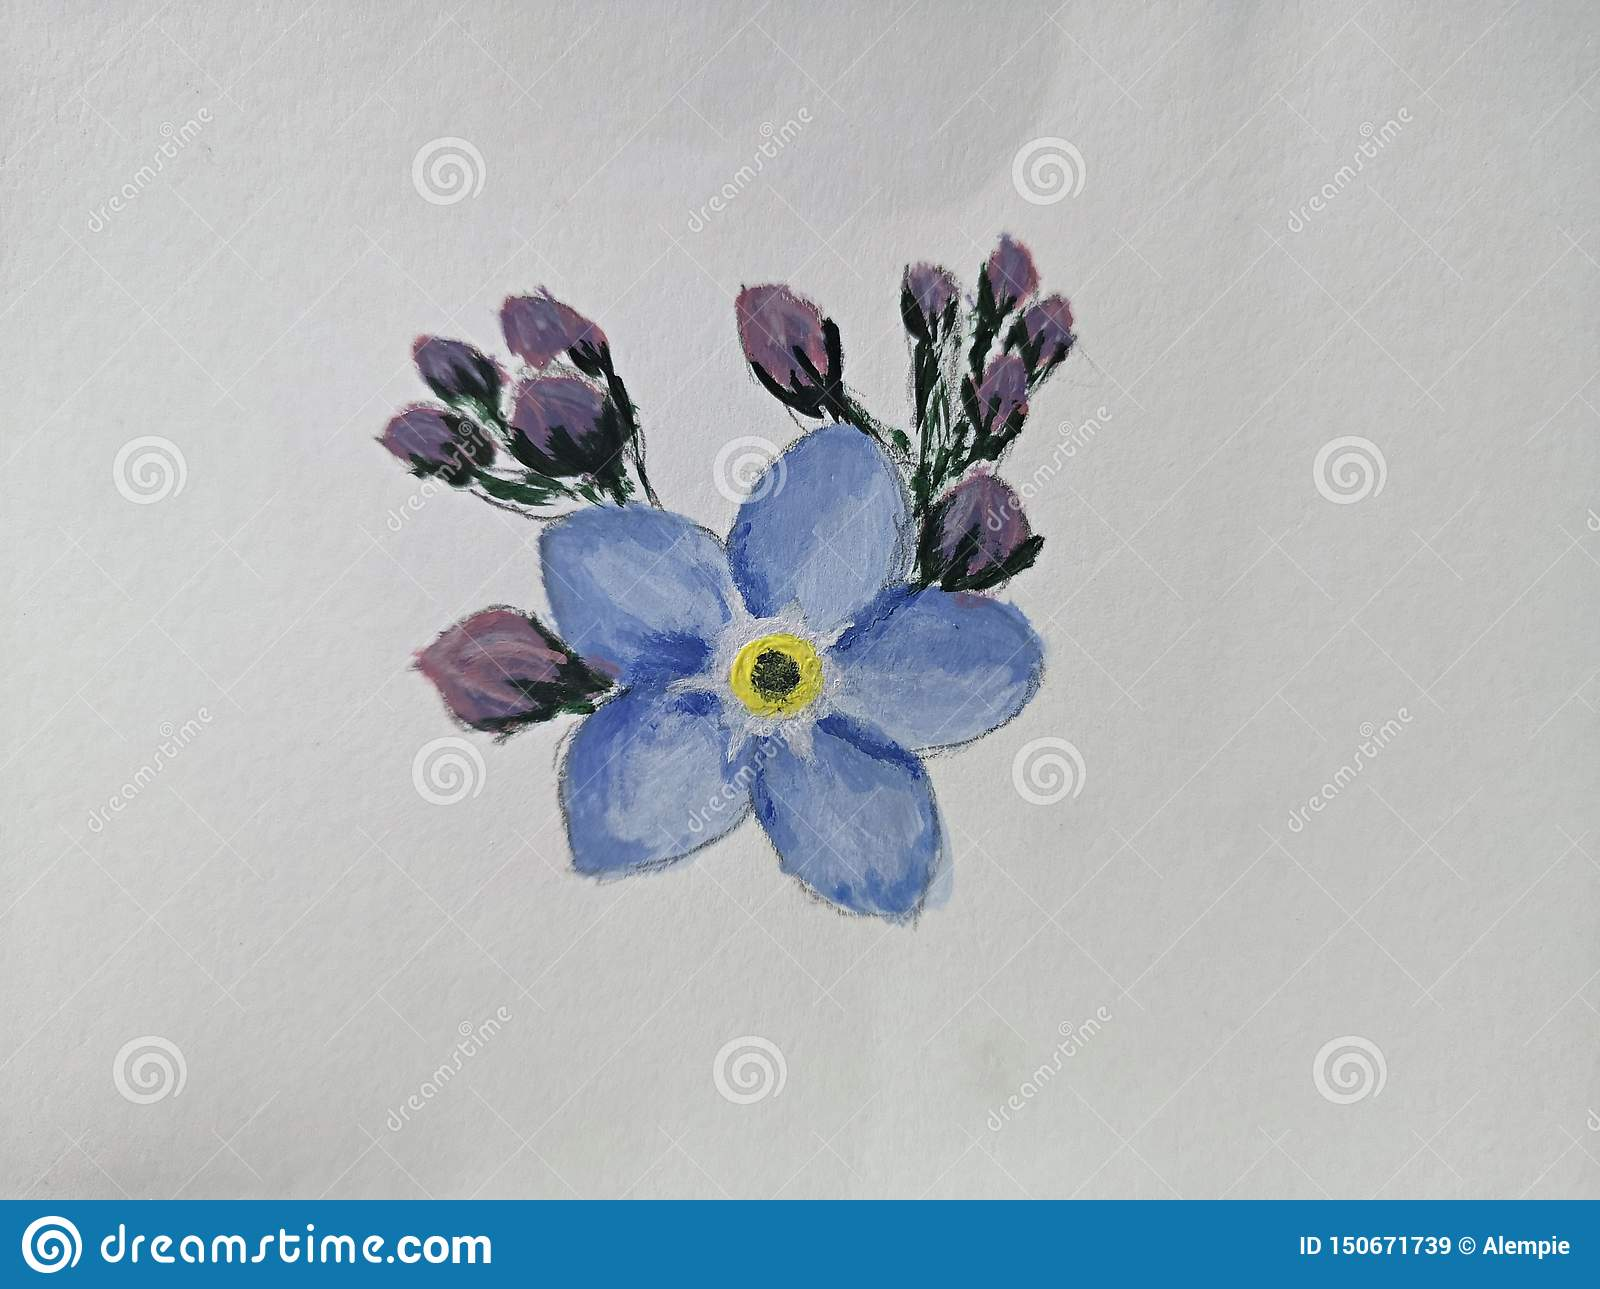 Forget Me Not Flowers Illustration Watercolor On Paper Stock Image Image Of Flora Draw 150671739